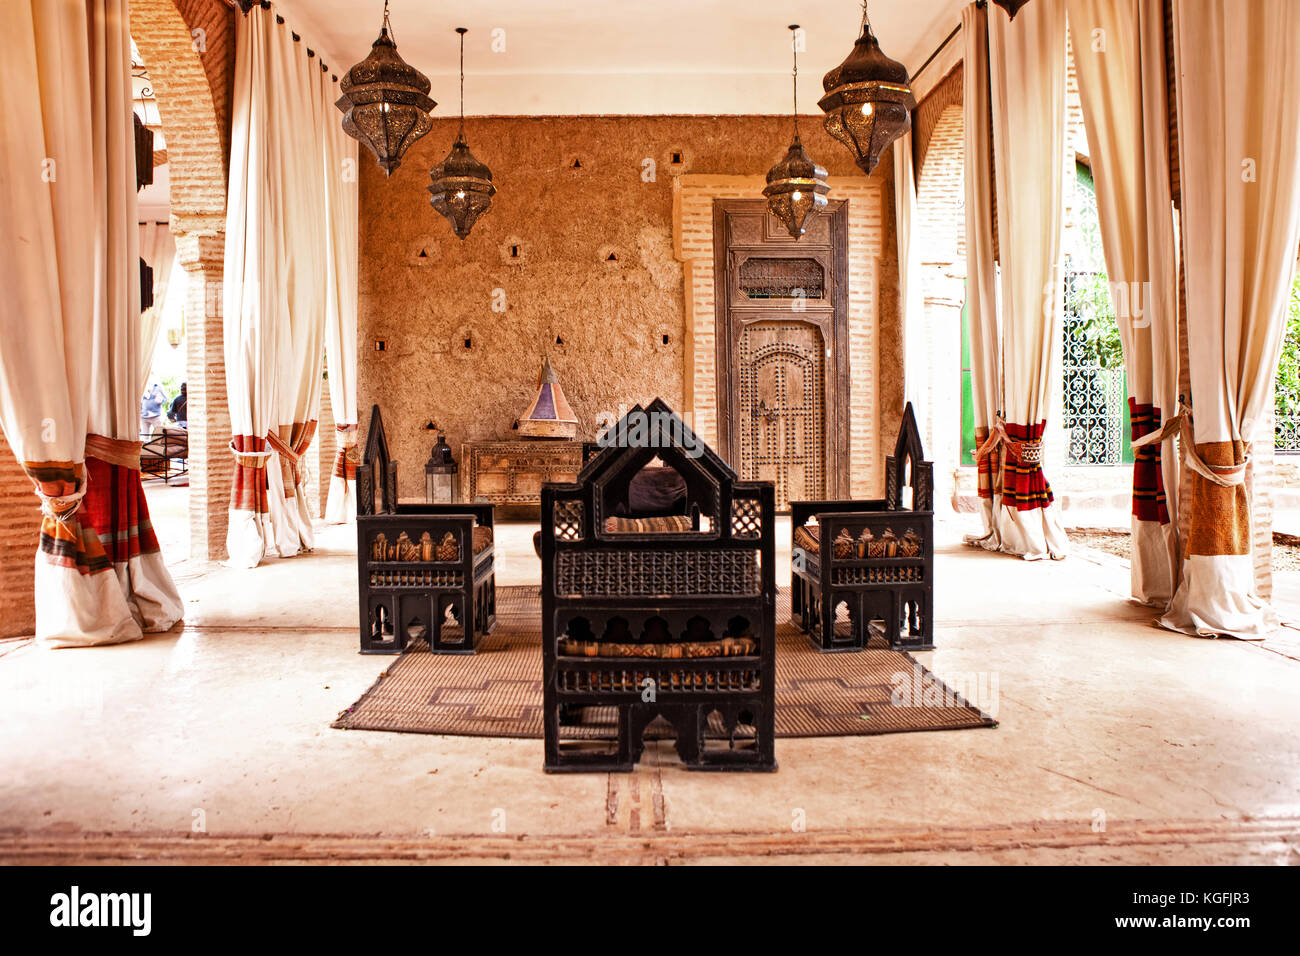 Moroccan Lounge Stock Photos Moroccan Lounge Stock Images Alamy